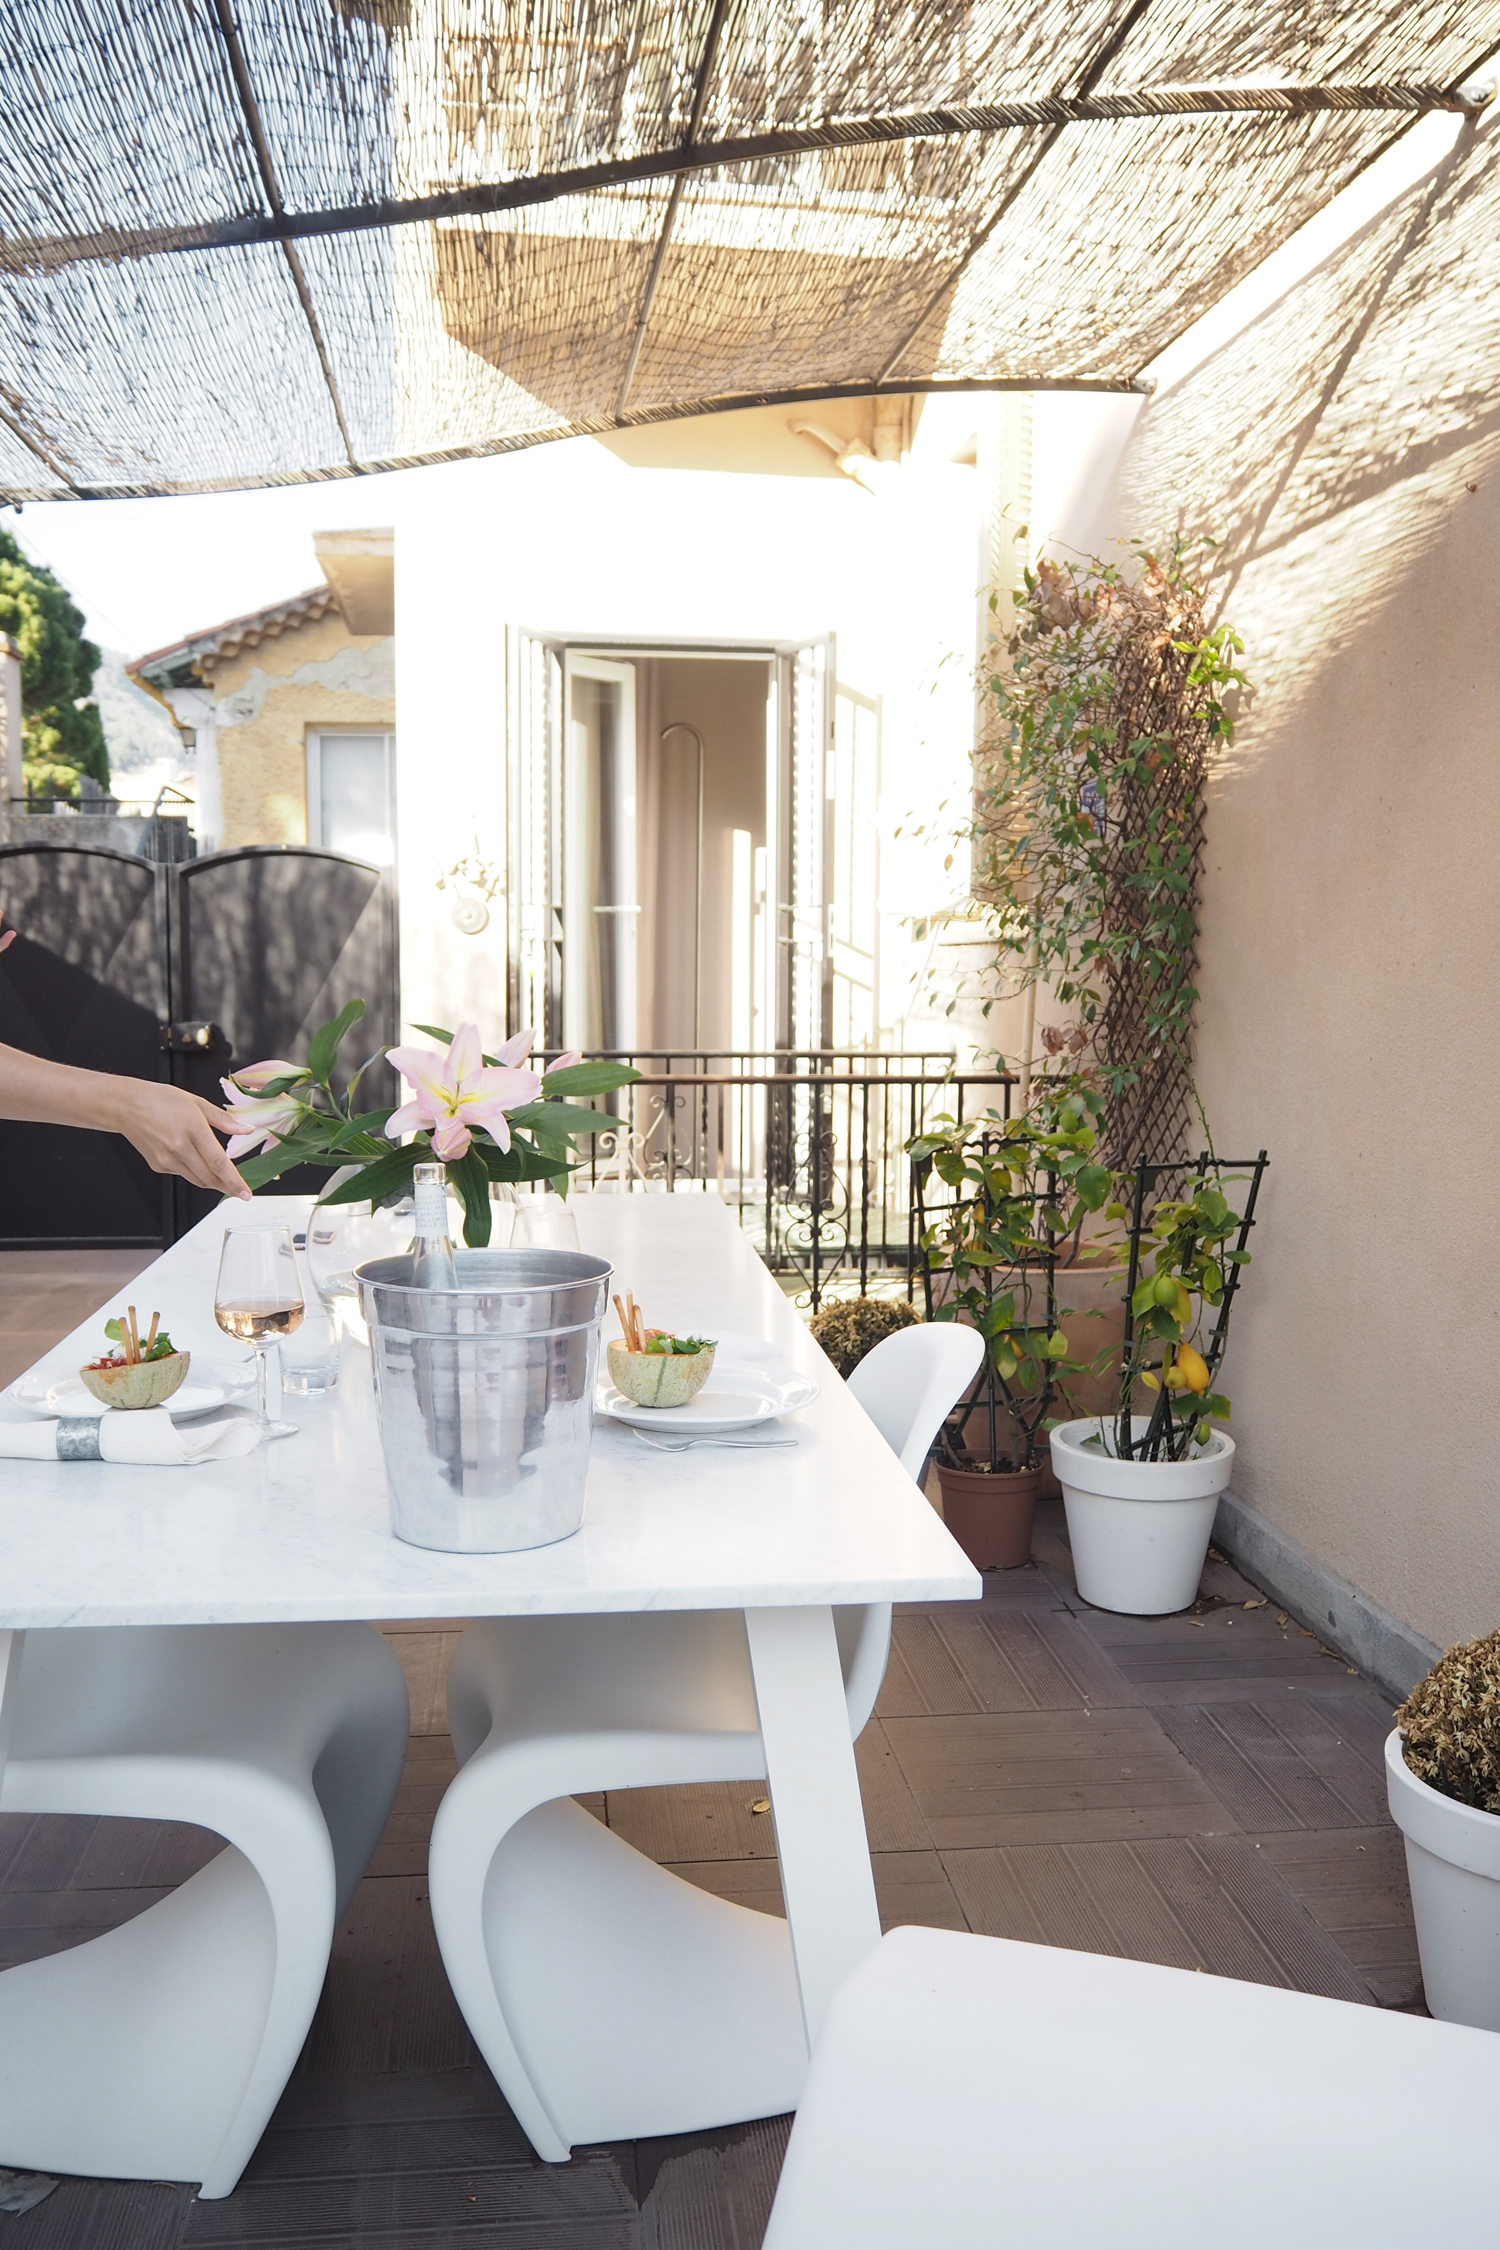 Char and the city - Hemma hos Avec Sofie in Villefranche-sur-Mer in the French Riviera #hemmahos